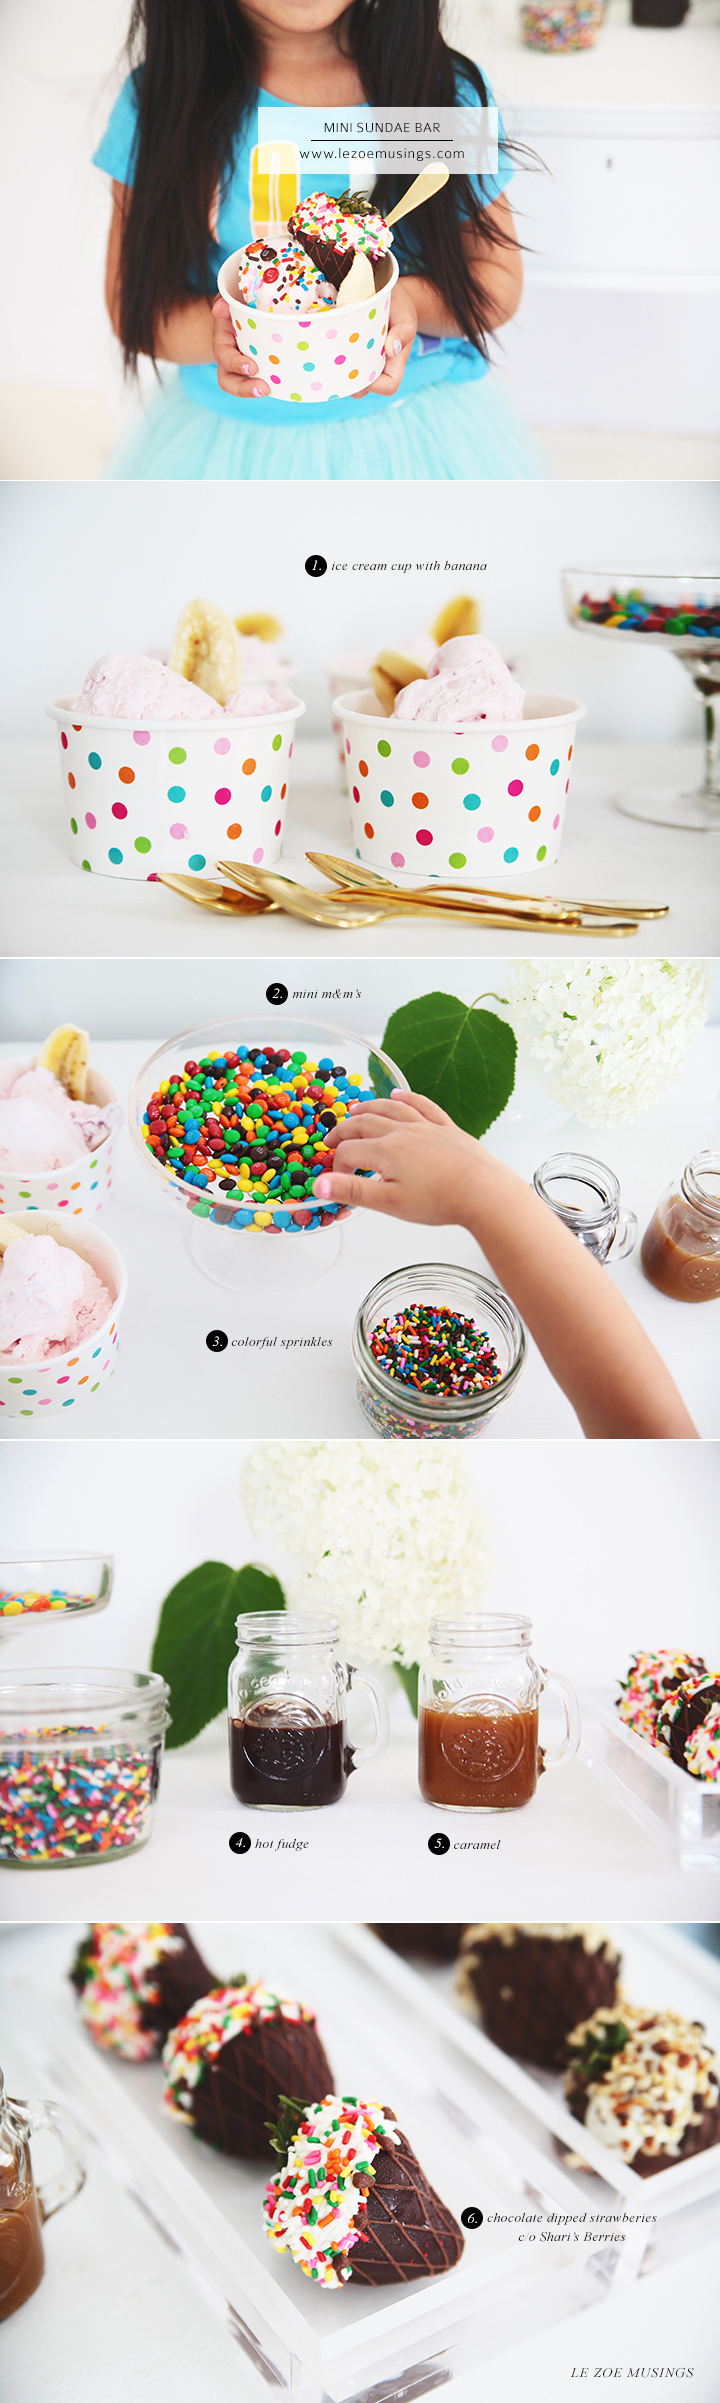 Mini Sundae Bar by Le Zoe Musings 3